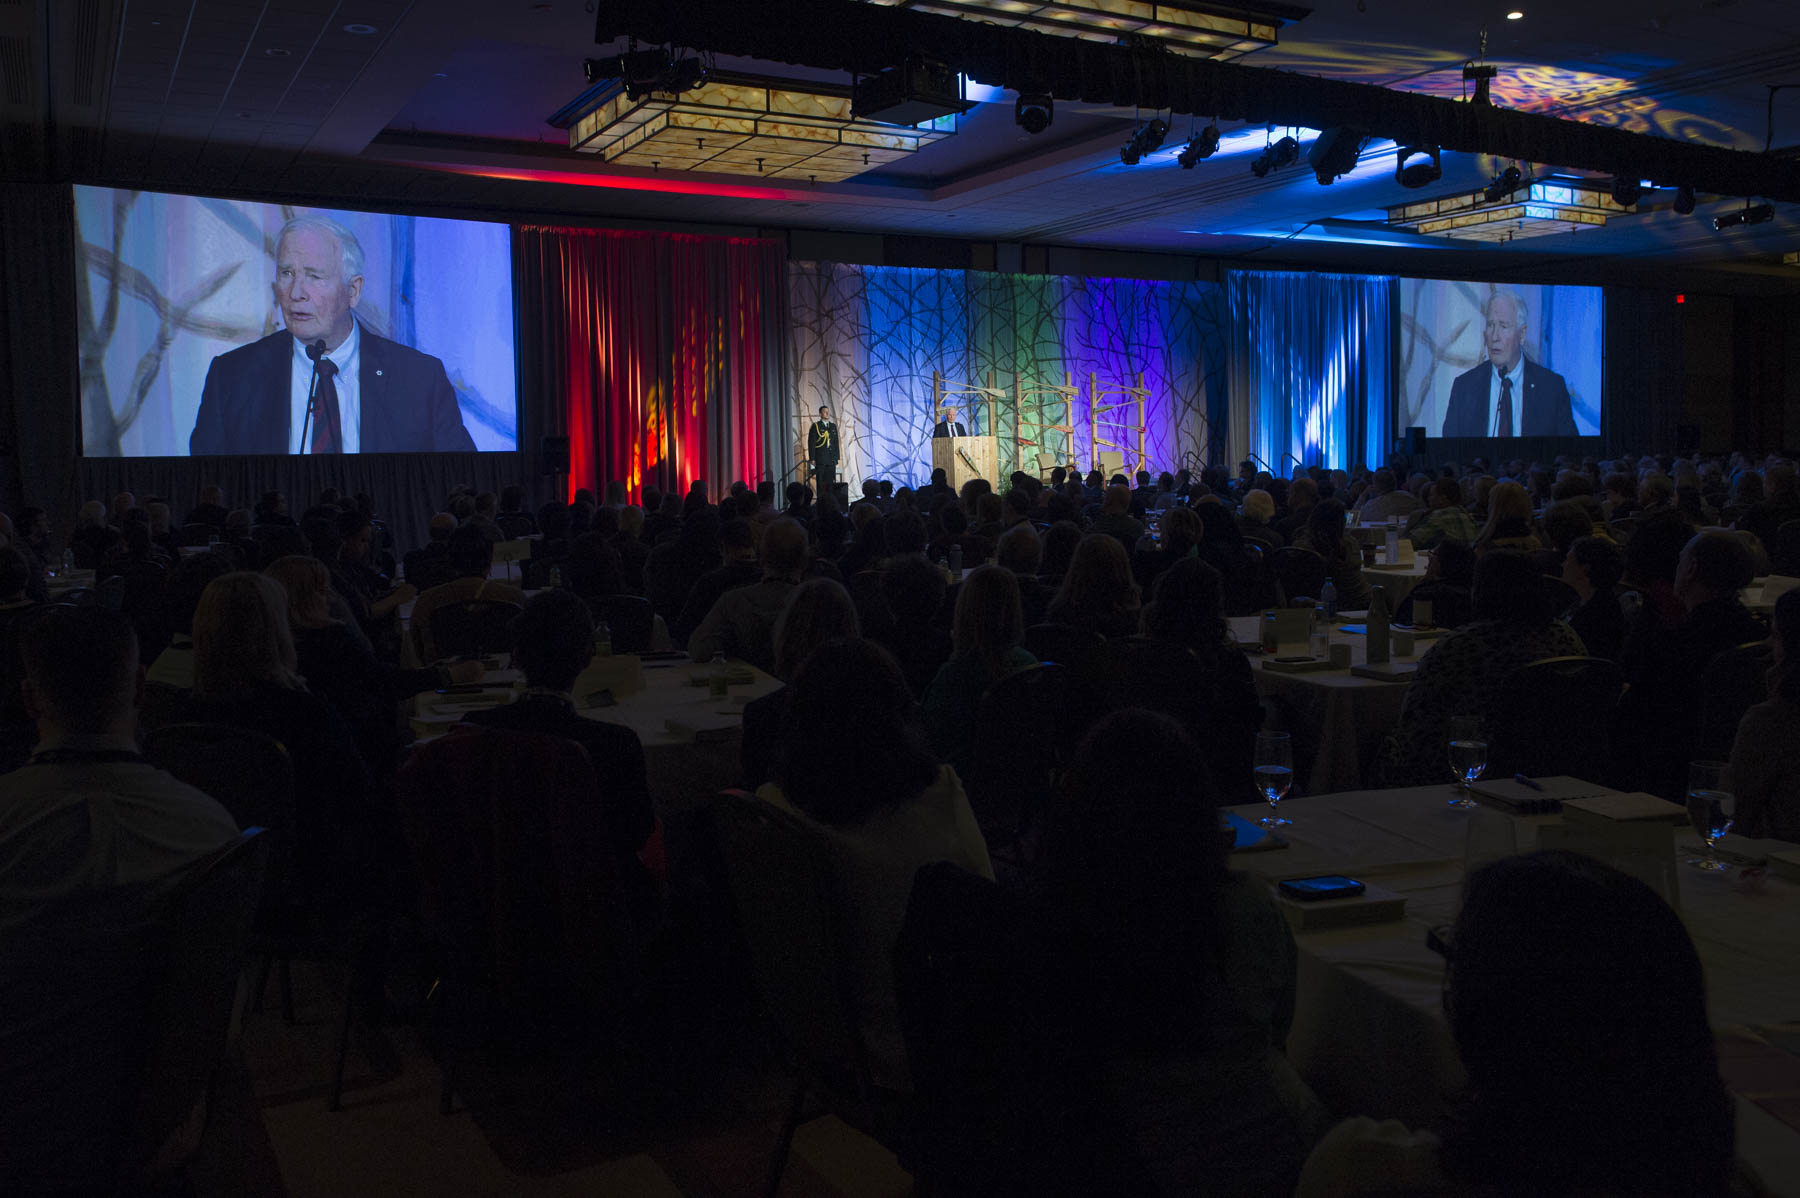 The theme of this year's conference is Belonging. On this occasion, the Governor General spoke about inclusiveness and how it relates to the work being done by community foundations across the country.